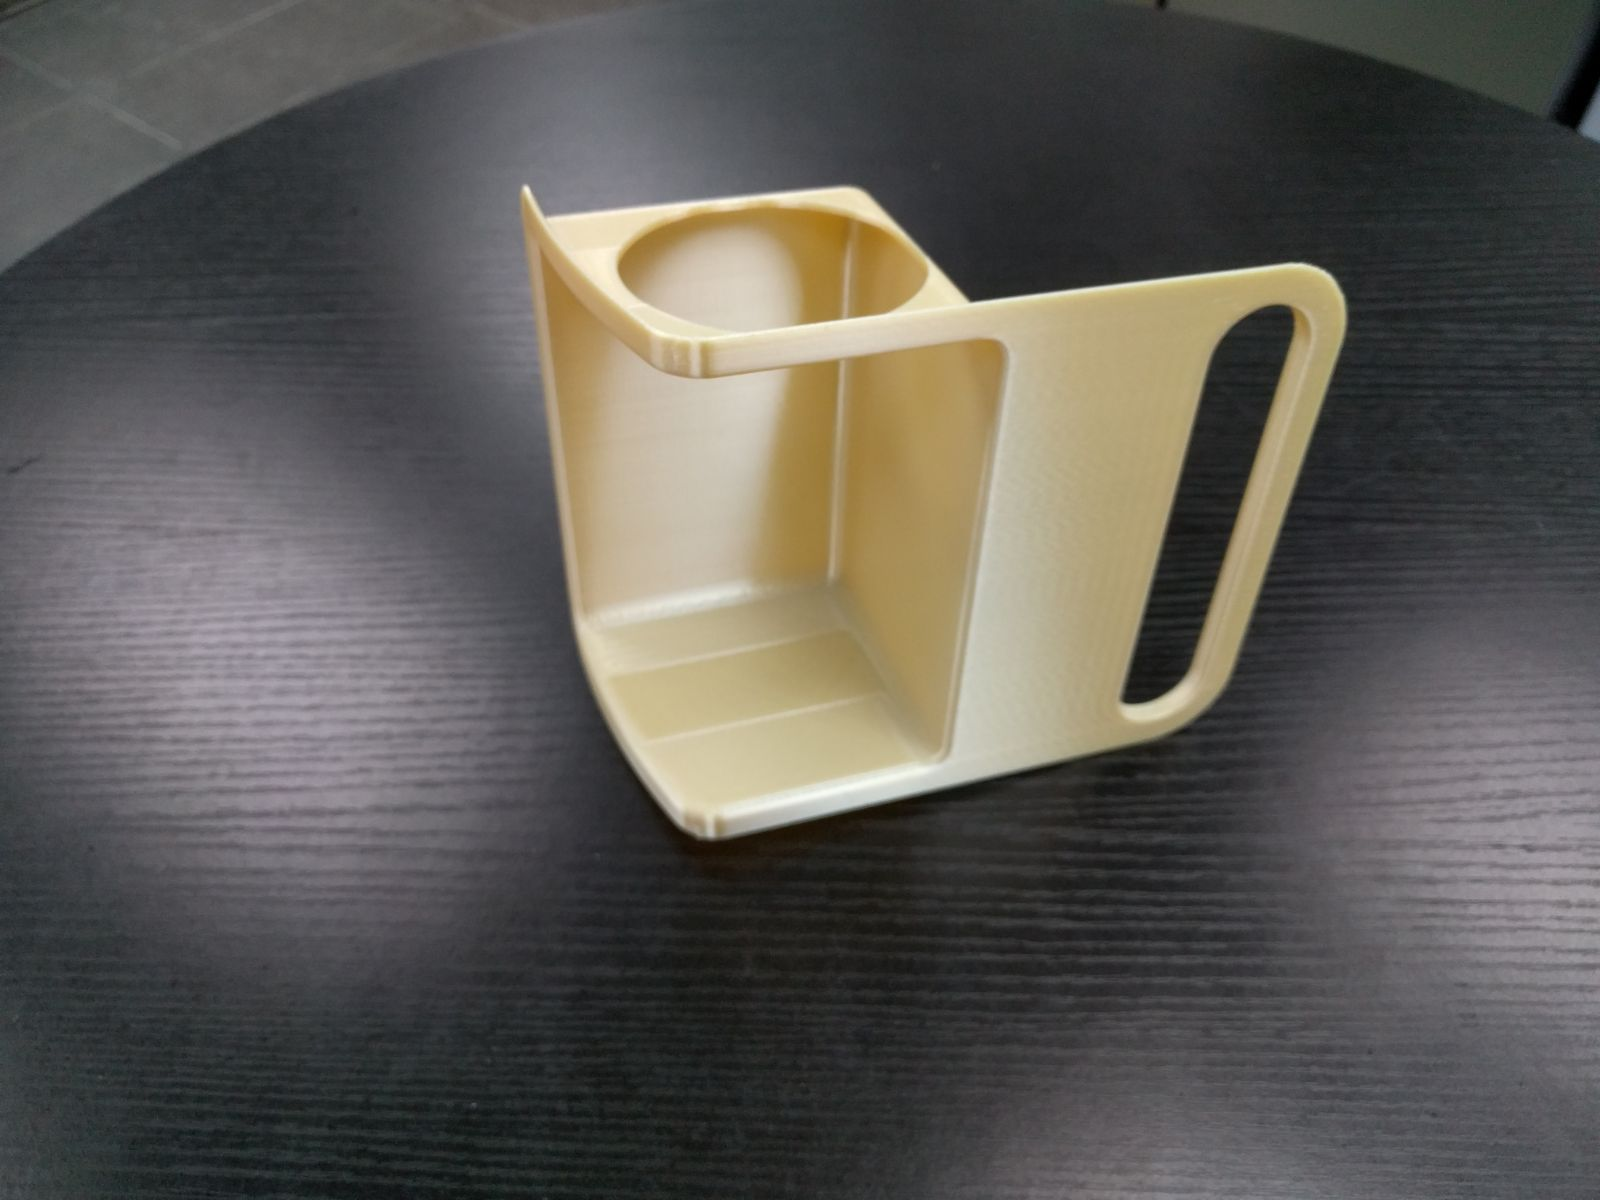 Final first class lavatory part, 3D printed in ULTEM 9085 material with the Stratasys Fortus 900mc Aircraft Interiors Certification Solution (Photo: Business Wire)